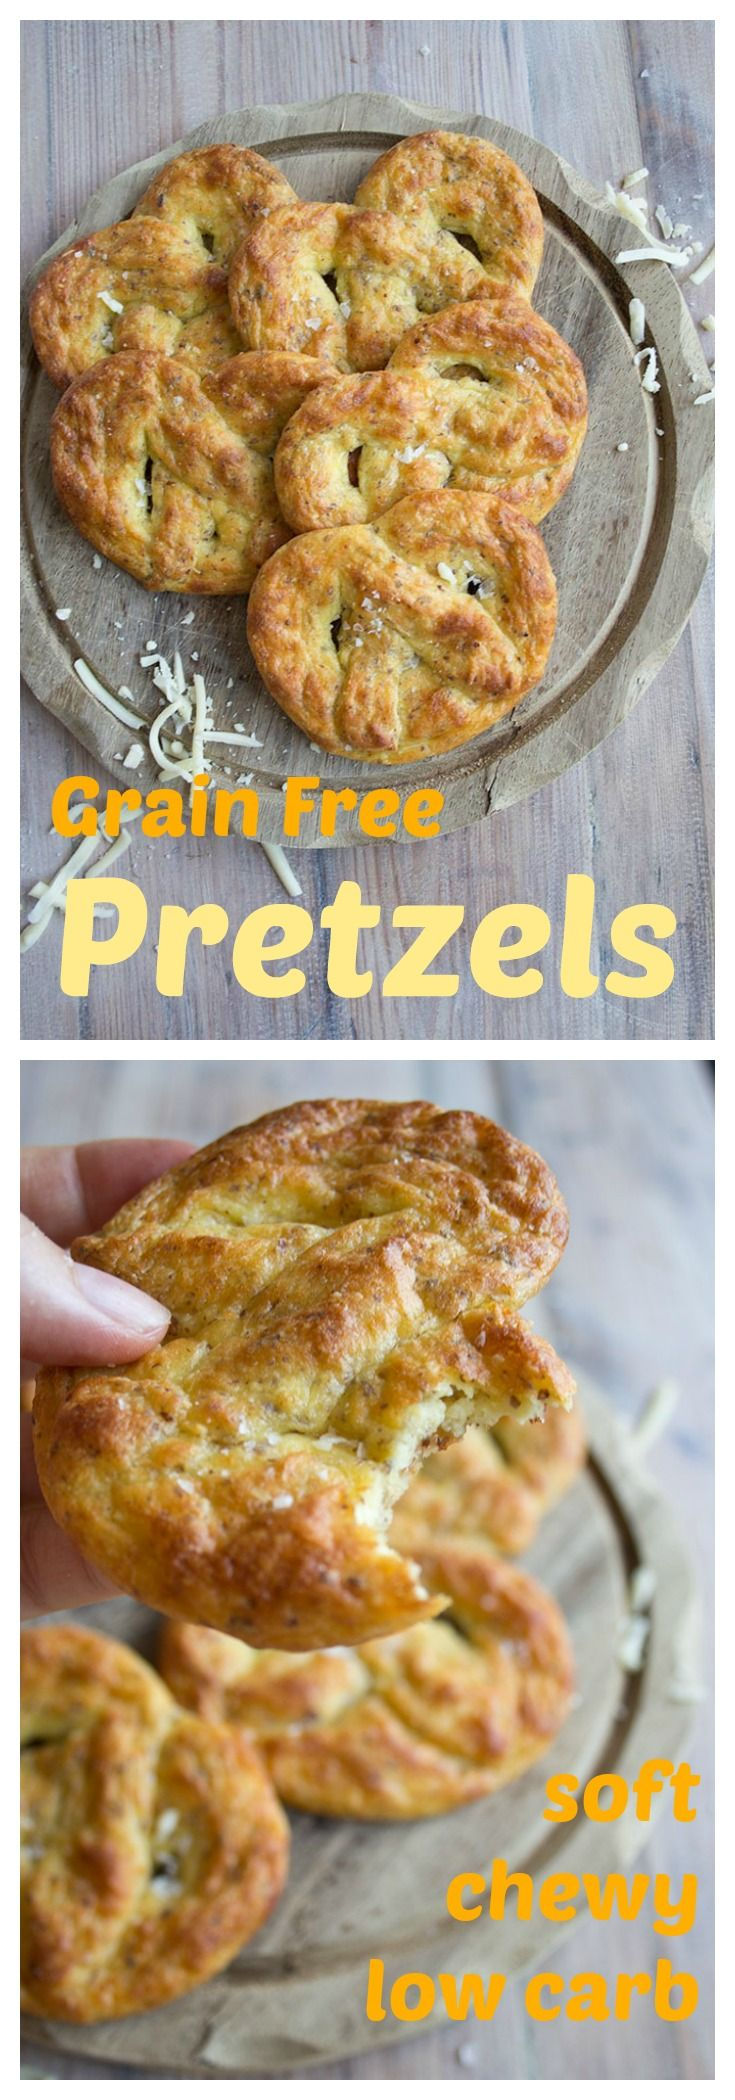 Soft and simply irresistible: low carb, grain free pretzels take snacking to the next level.